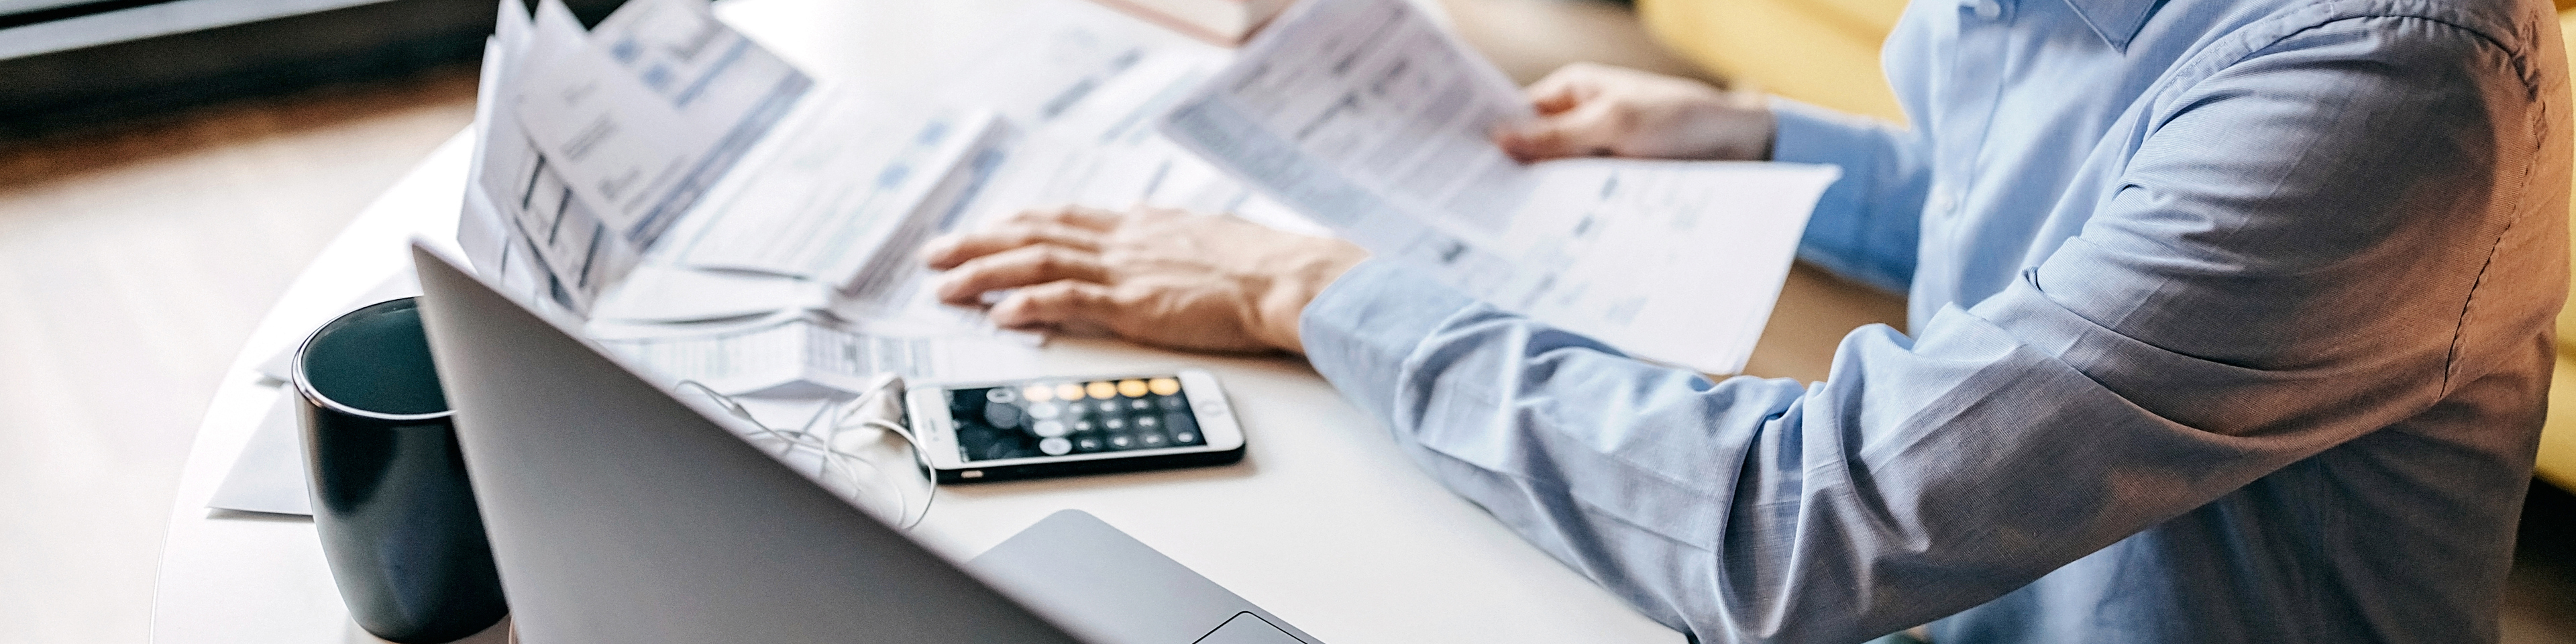 Webinar: How to streamline your entire tax process